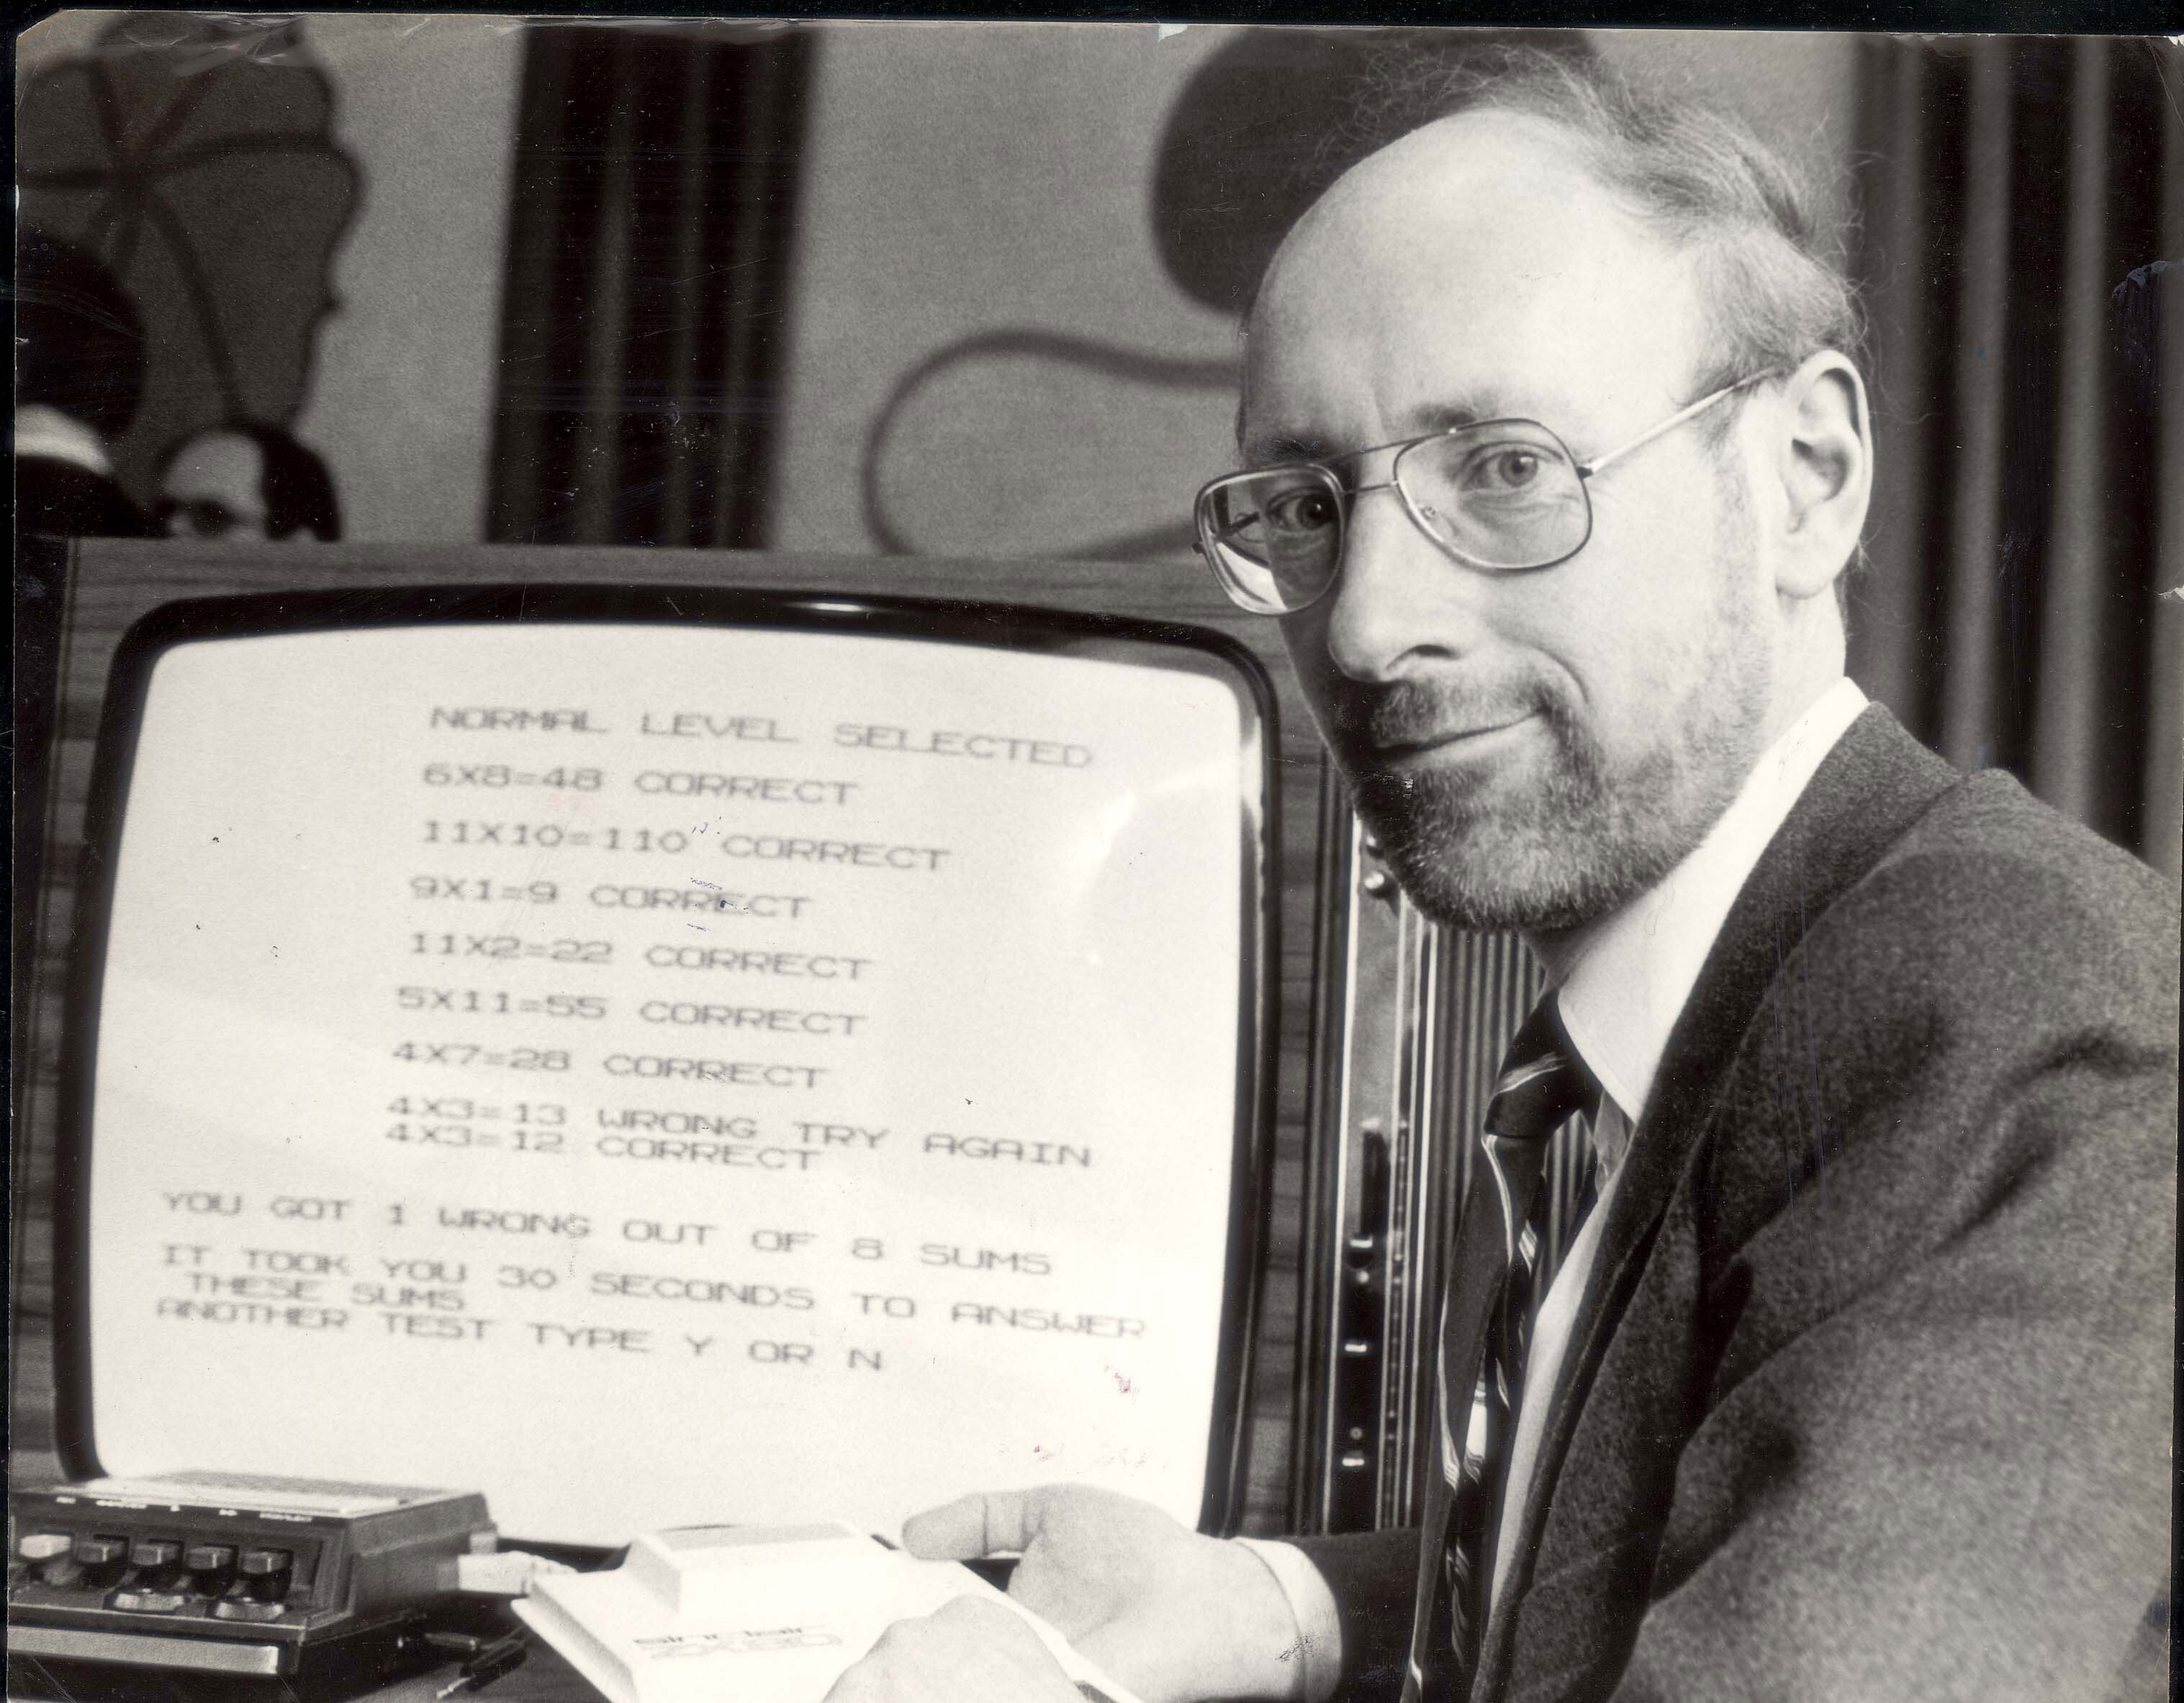 Clive Sinclair, an inventor who helped popularize personal computers, dies at 81